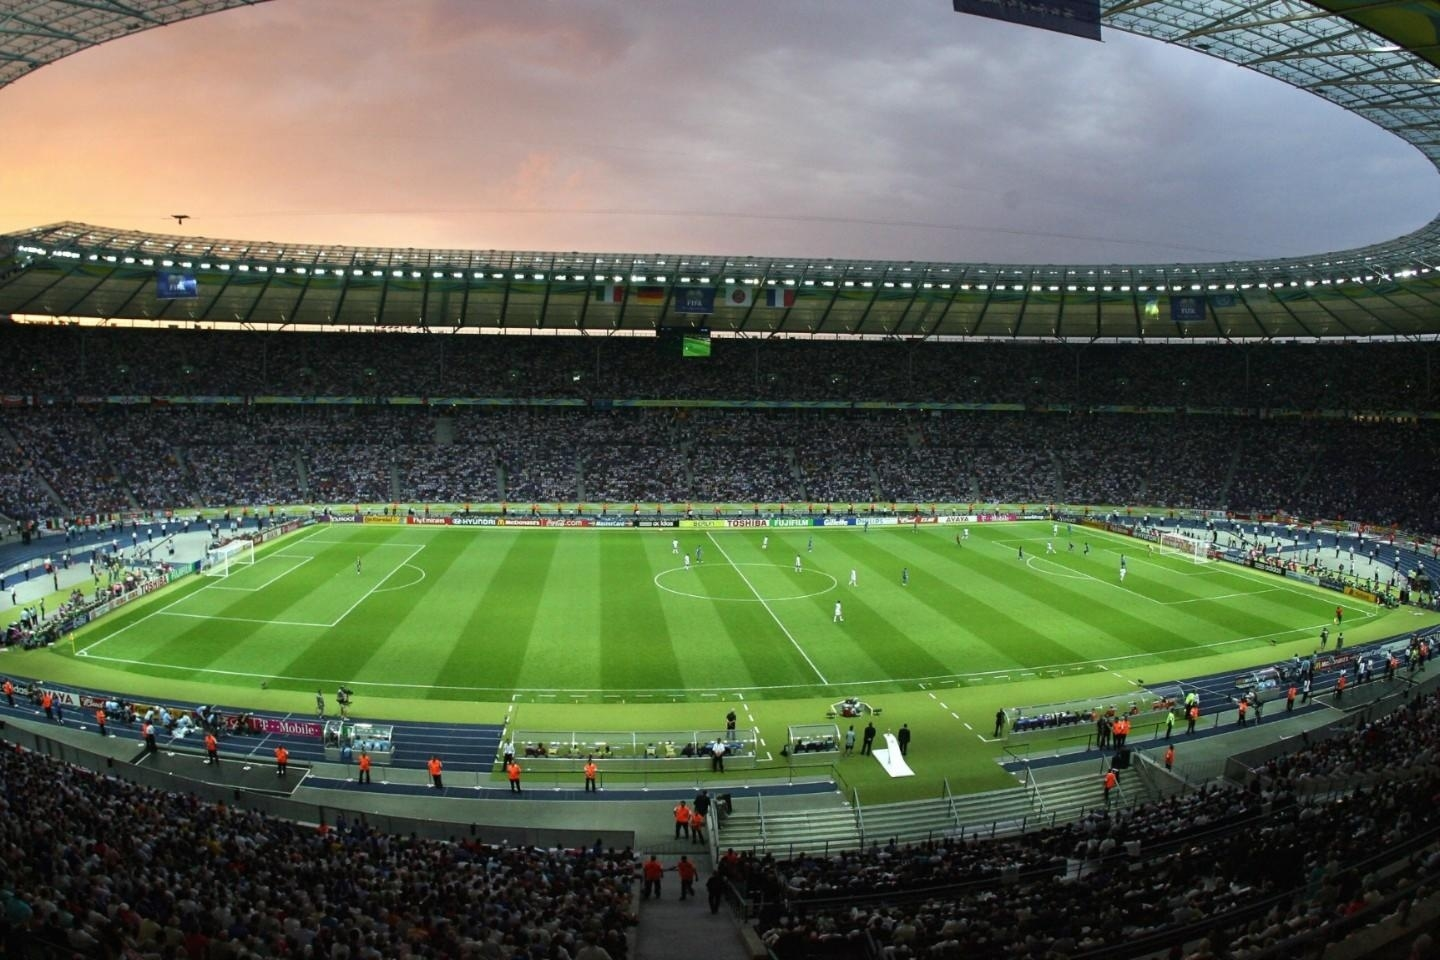 Dfb Tickets | Dfb Pokal 2019 Tickets - Viagogo within Karten Pokalfinale Berlin 2019